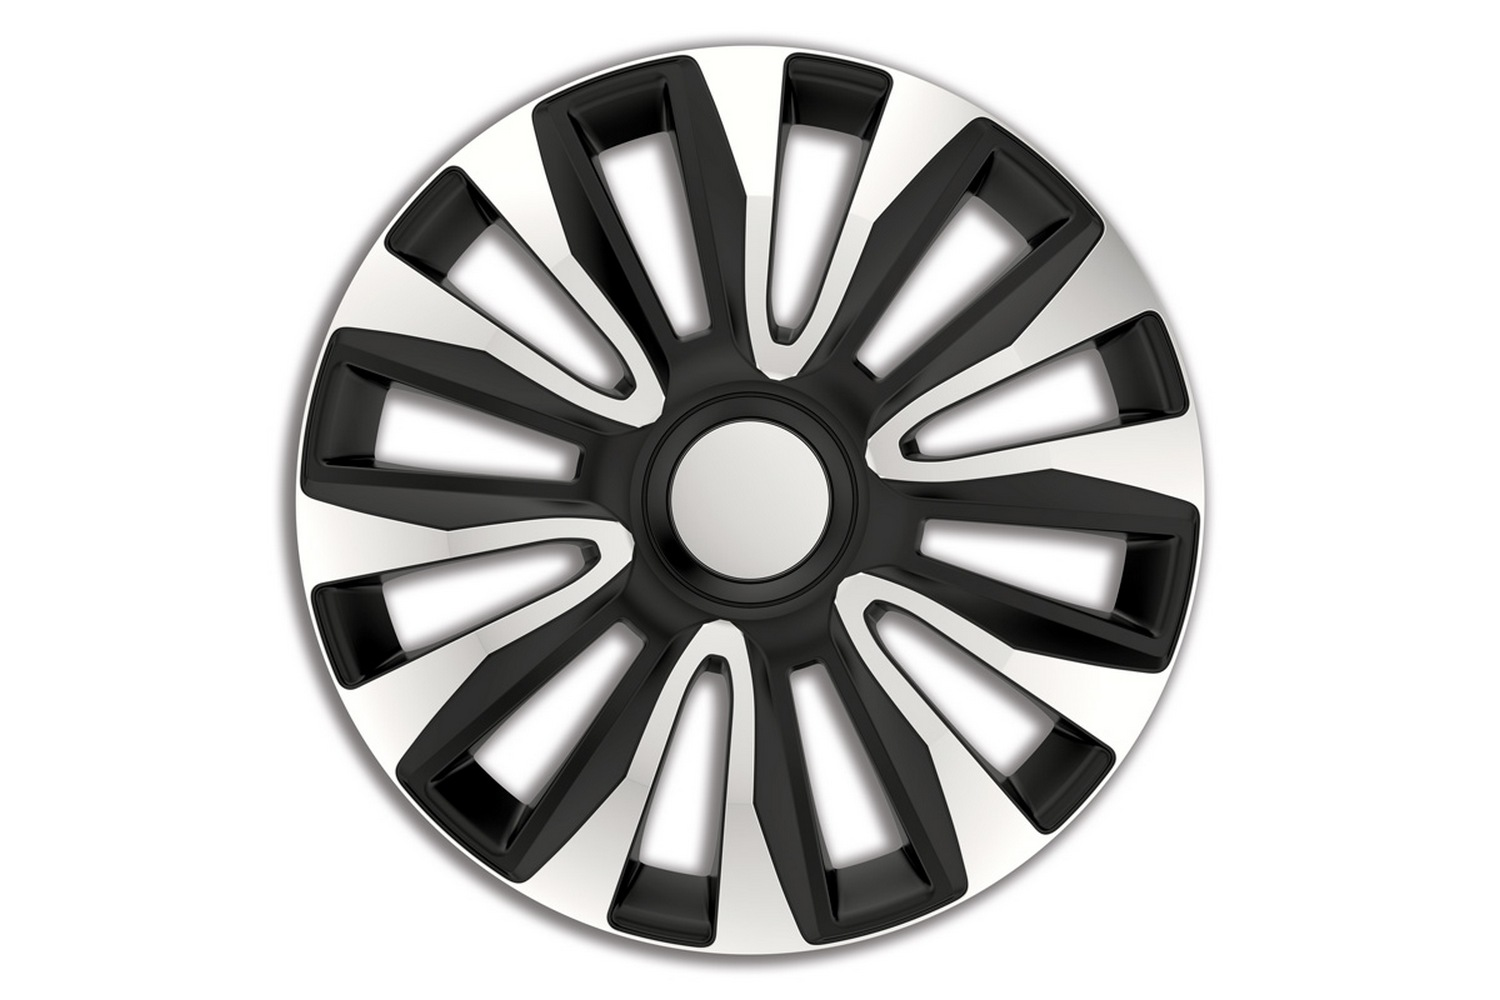 Wheel covers Avalone 16 inch set 4 pieces